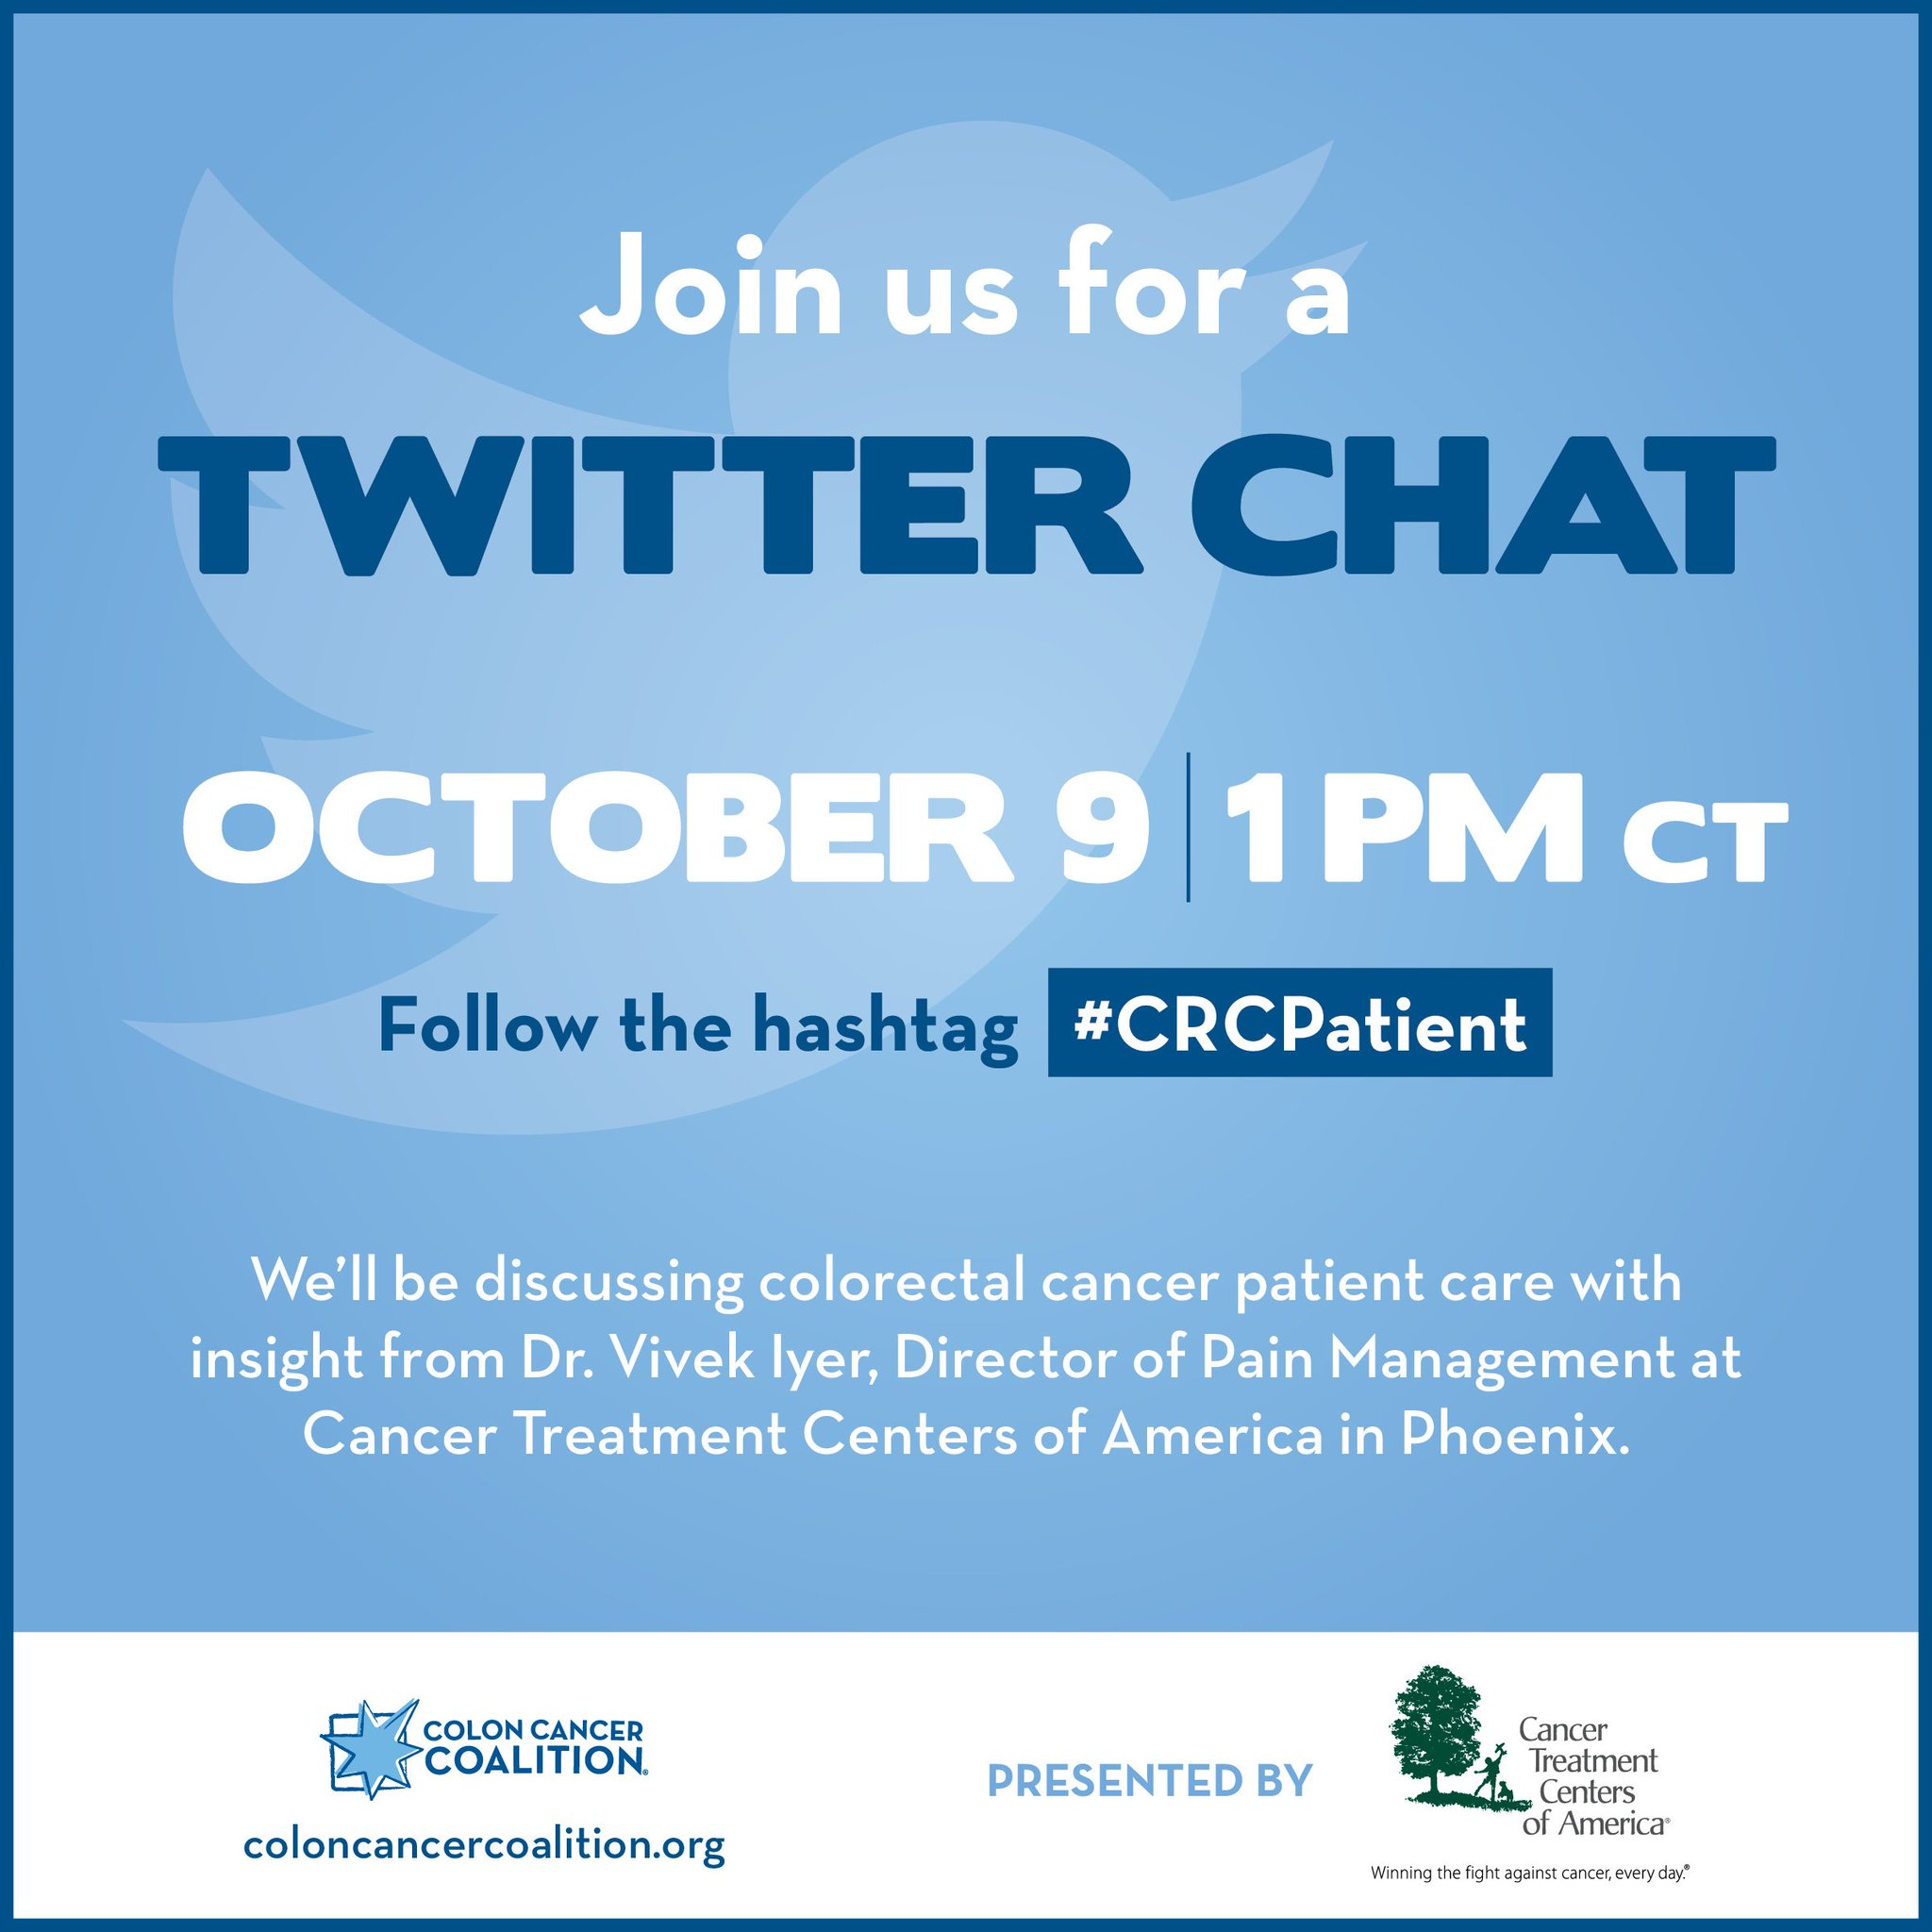 Colon Cancer Coalition On Twitter Chronic And Acute Pain Is Something Many Cancer Patients Are All Too Familiar With Dr Vivek Iyer Director Of Pain Management At Cancercenter In Phoenix Will Be